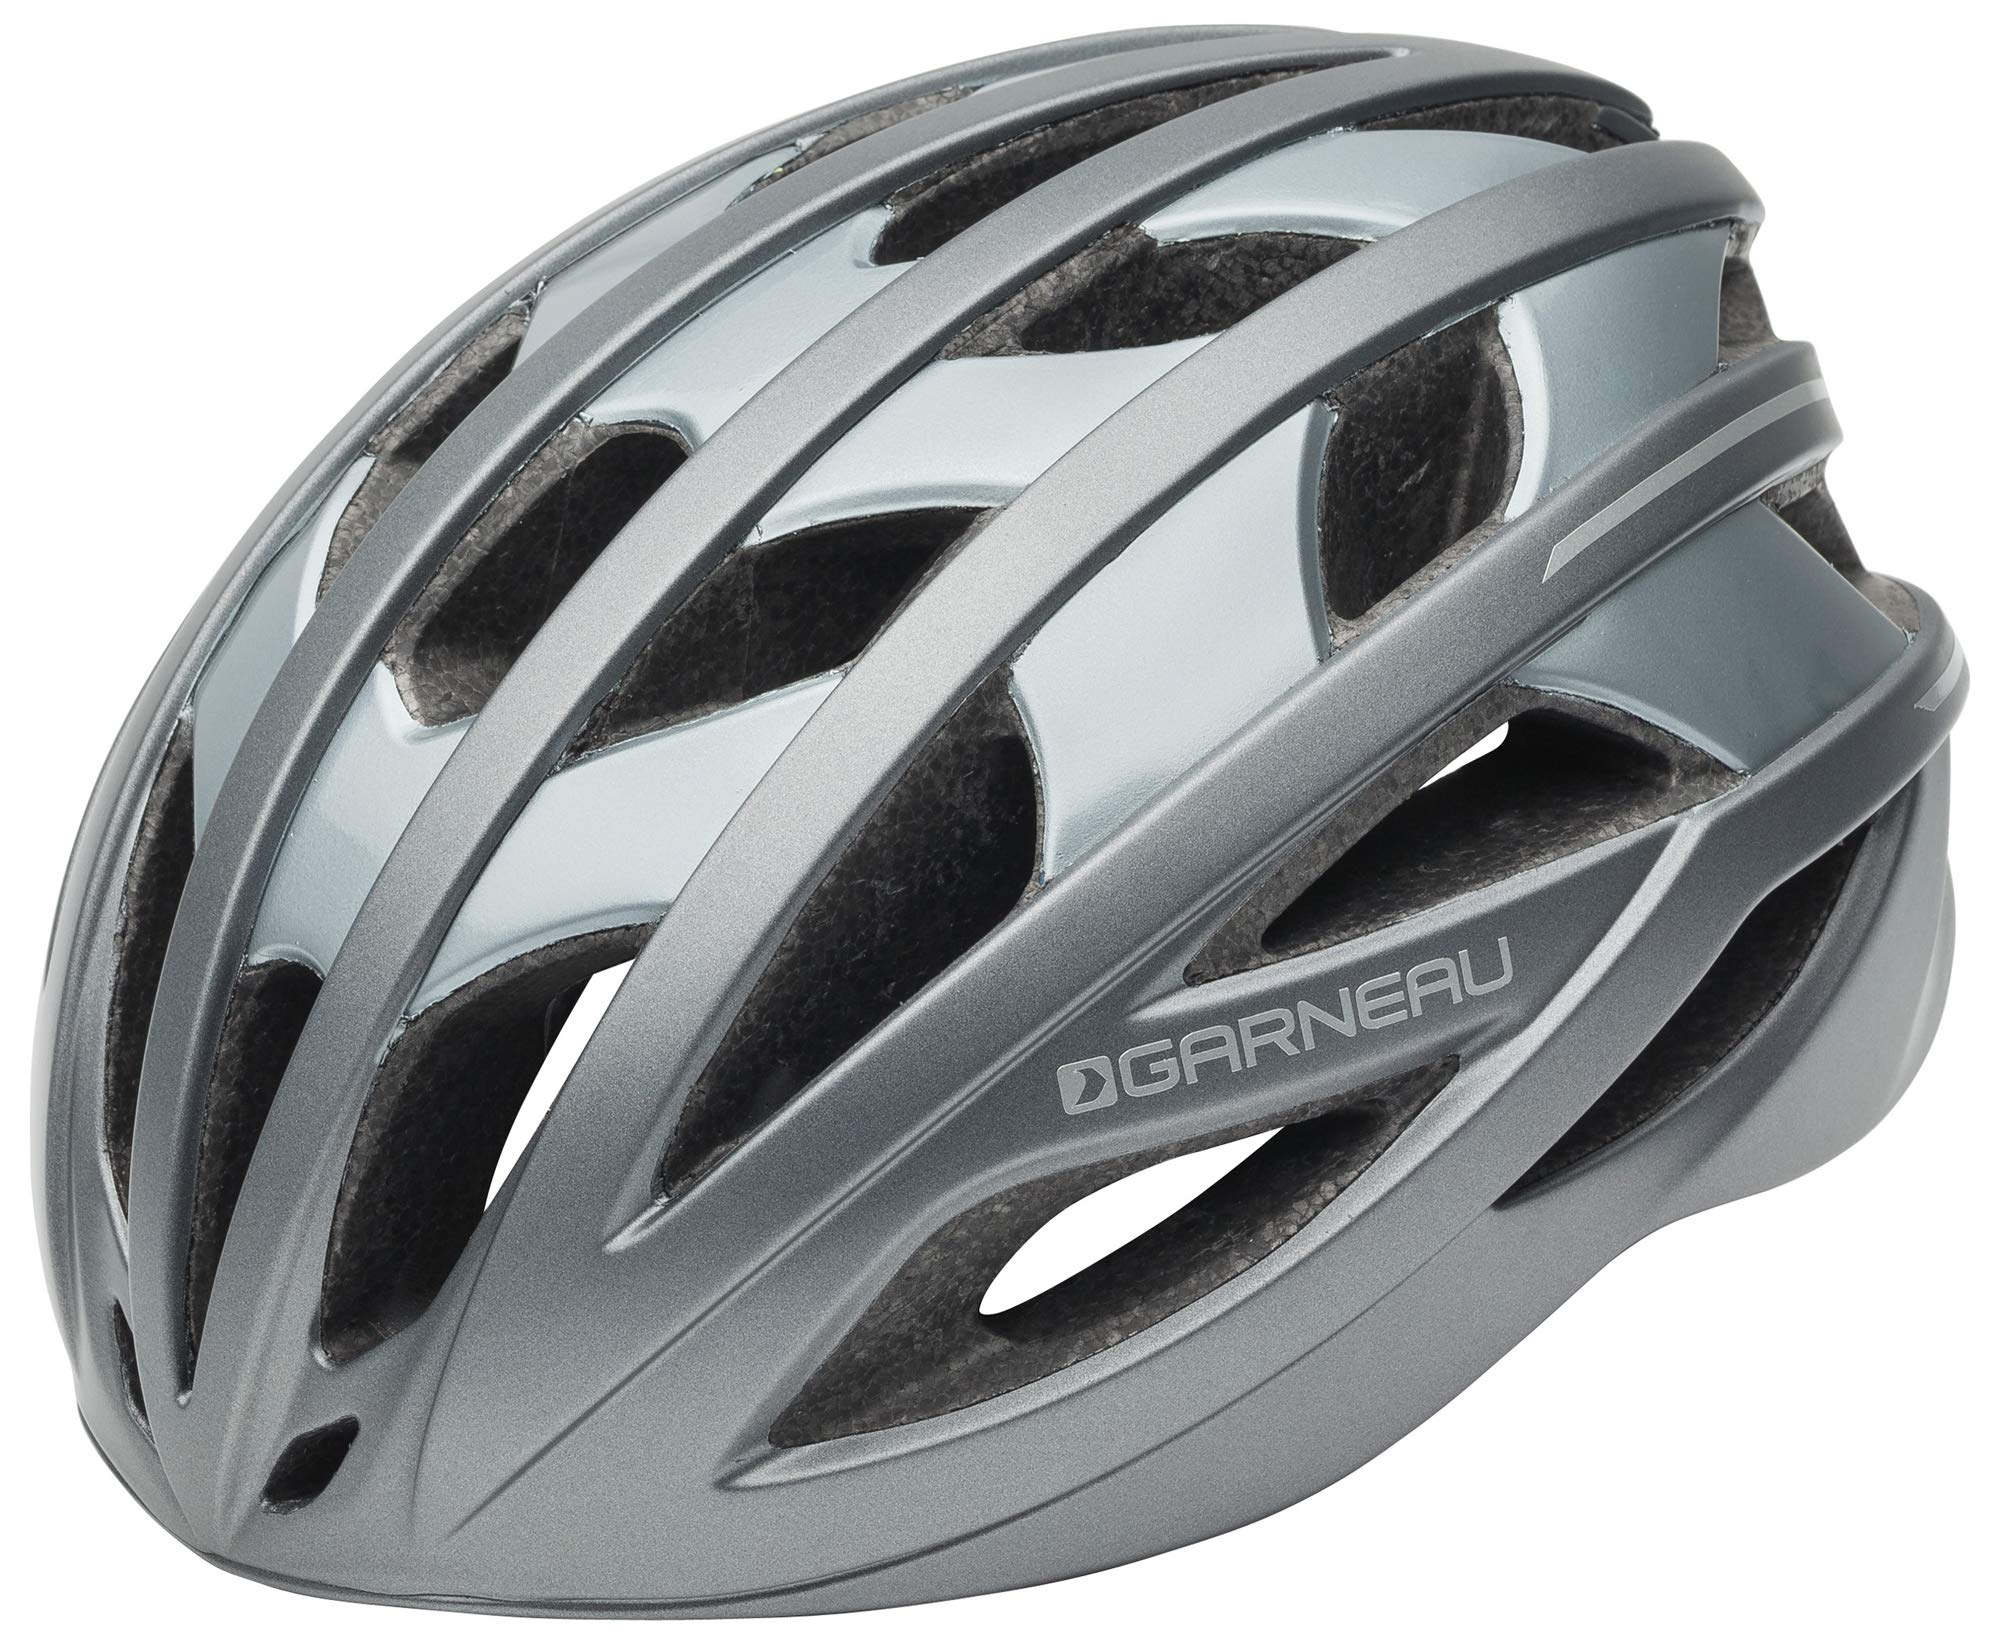 Louis Garneau Equipe Bike Helmet for Men and Women, Gray, Medium